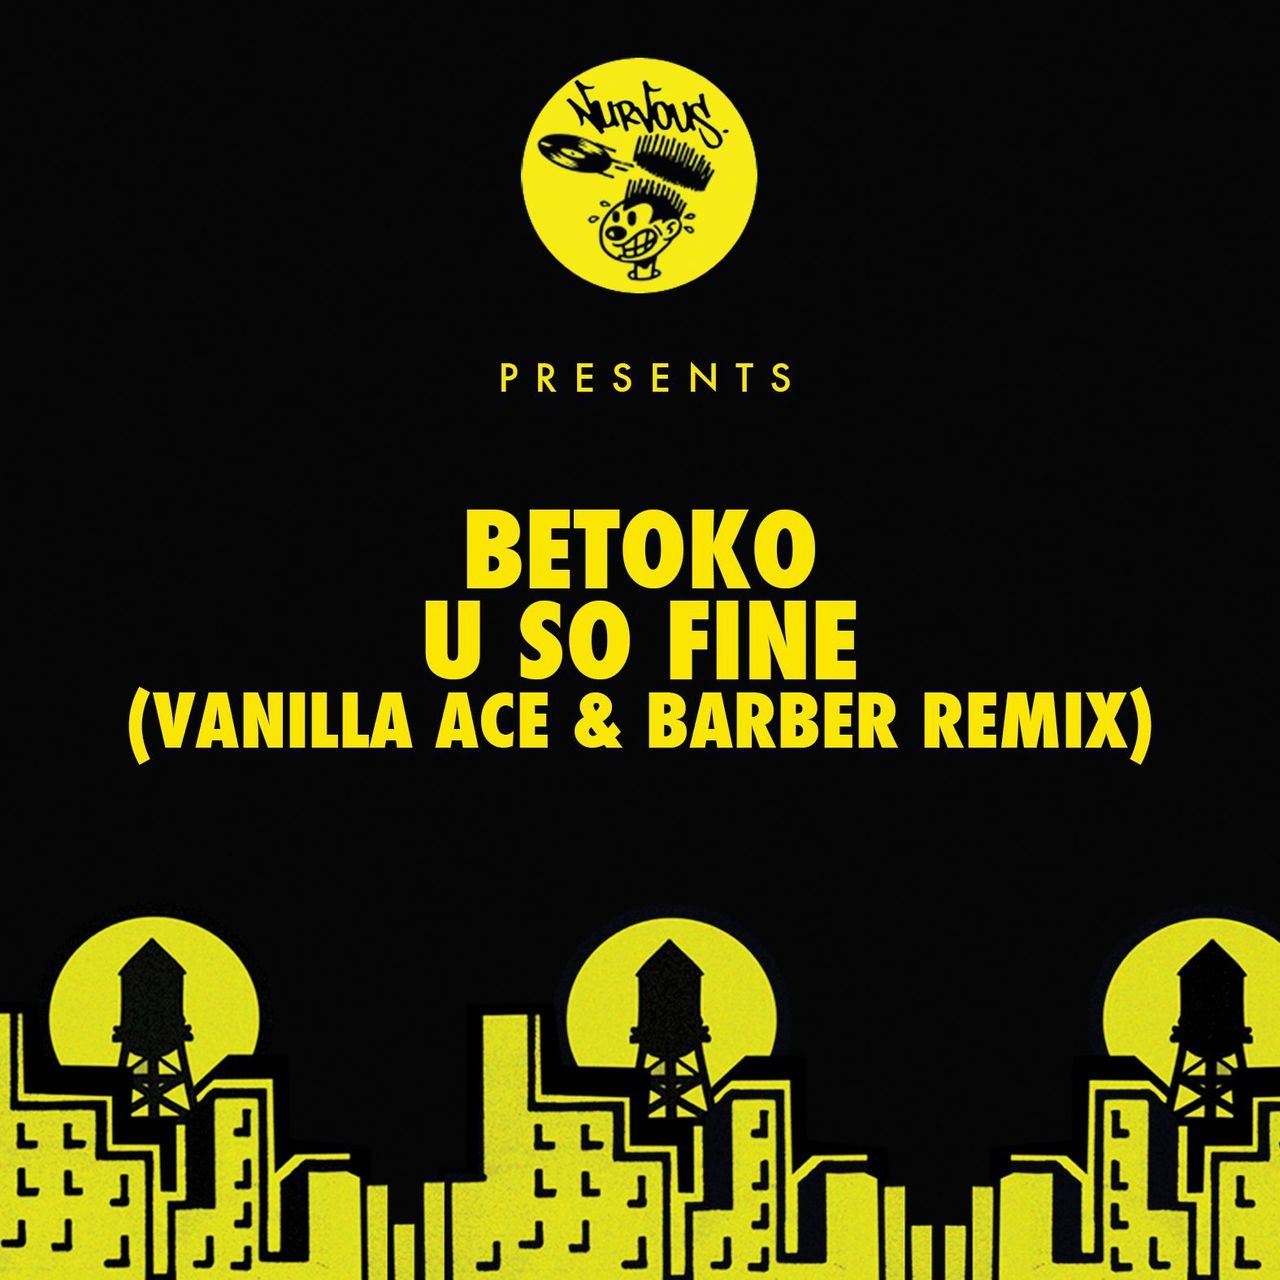 U So Fine (Vanilla Ace & Barber Remix)